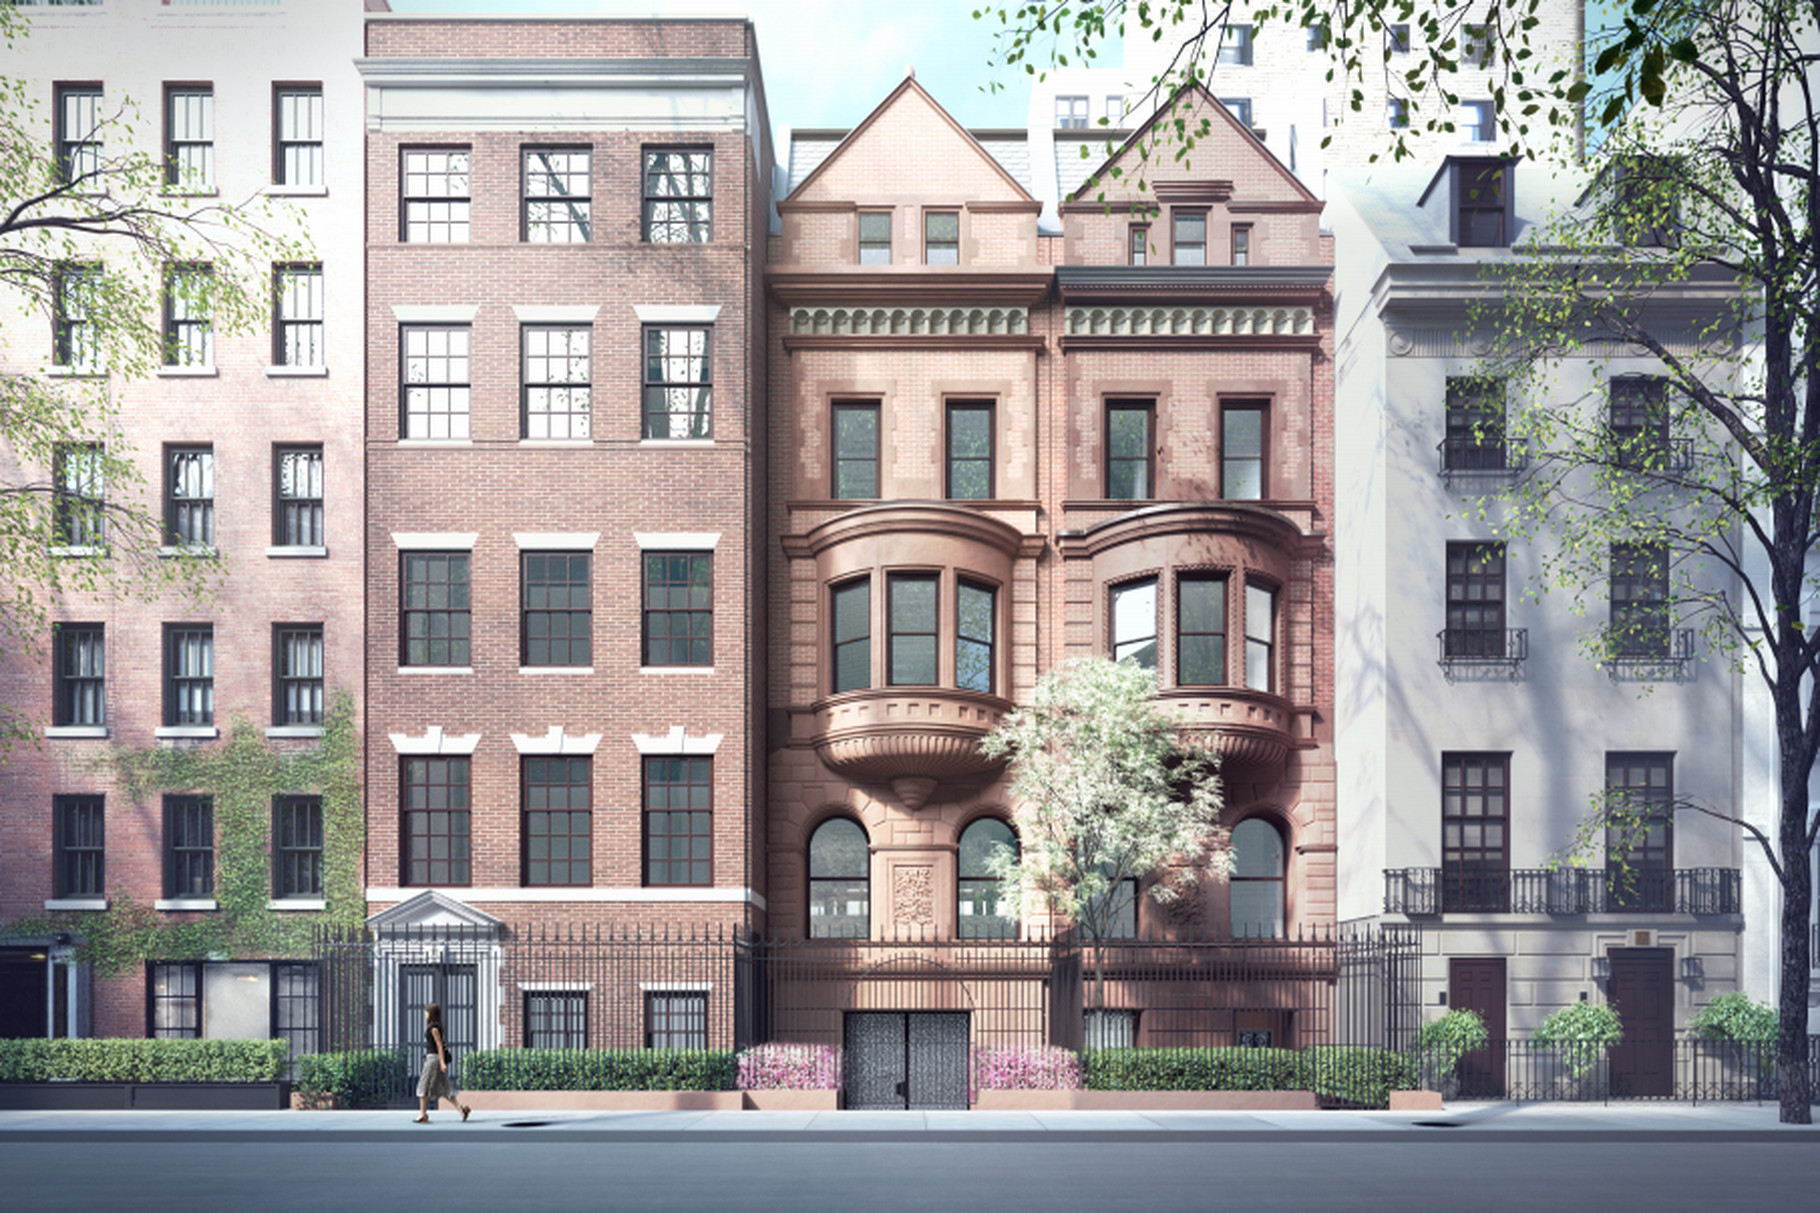 Roman Abramovich Purchases Another Townhouse On The Upper East Side For His Mega-Mansion Assemblage